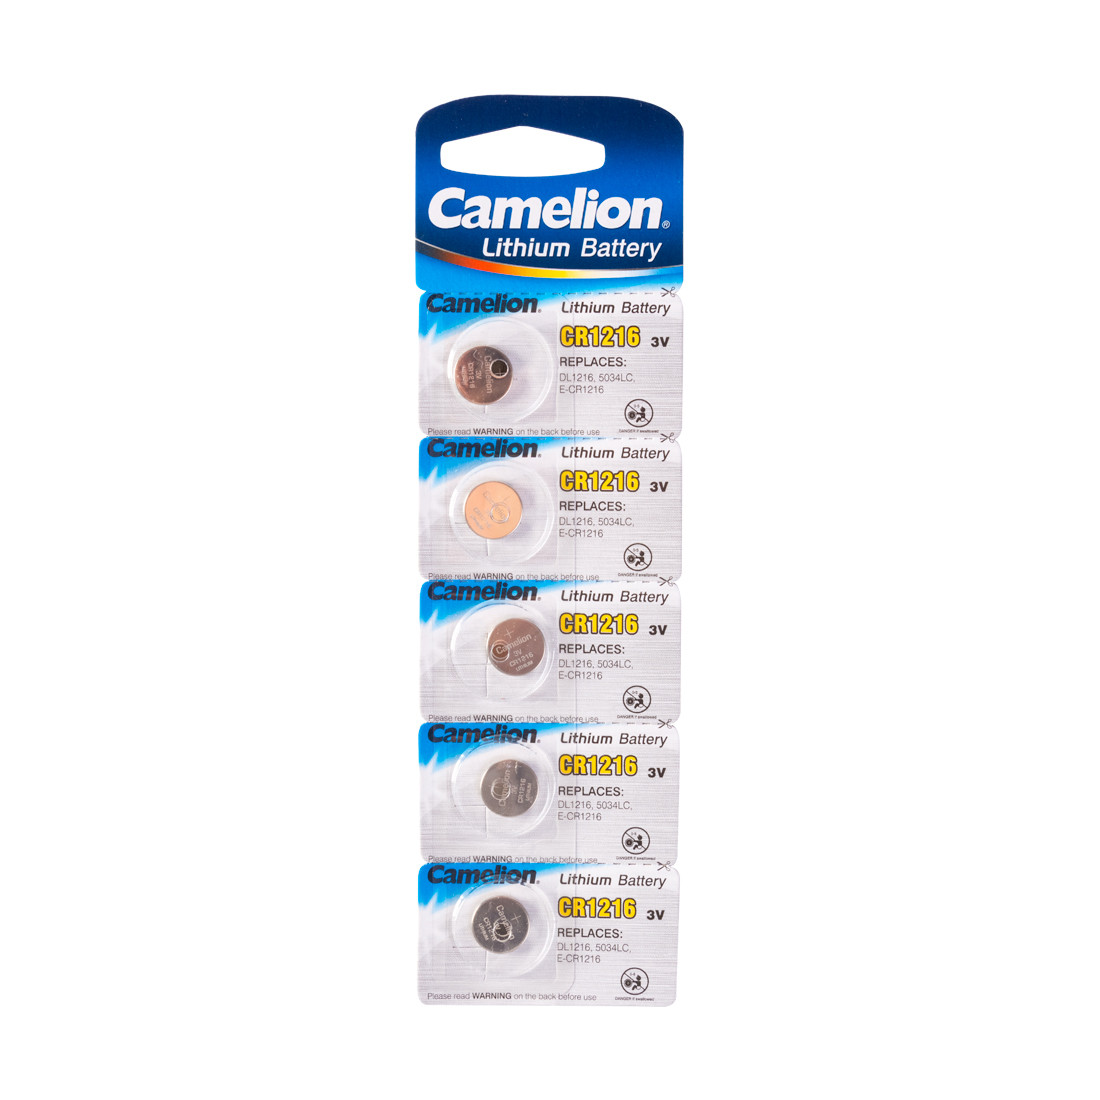 Батарейка, CAMELION, CR1216-BP5 Lithium Battery, CR1216 3V, 220 mAh, 5 шт.